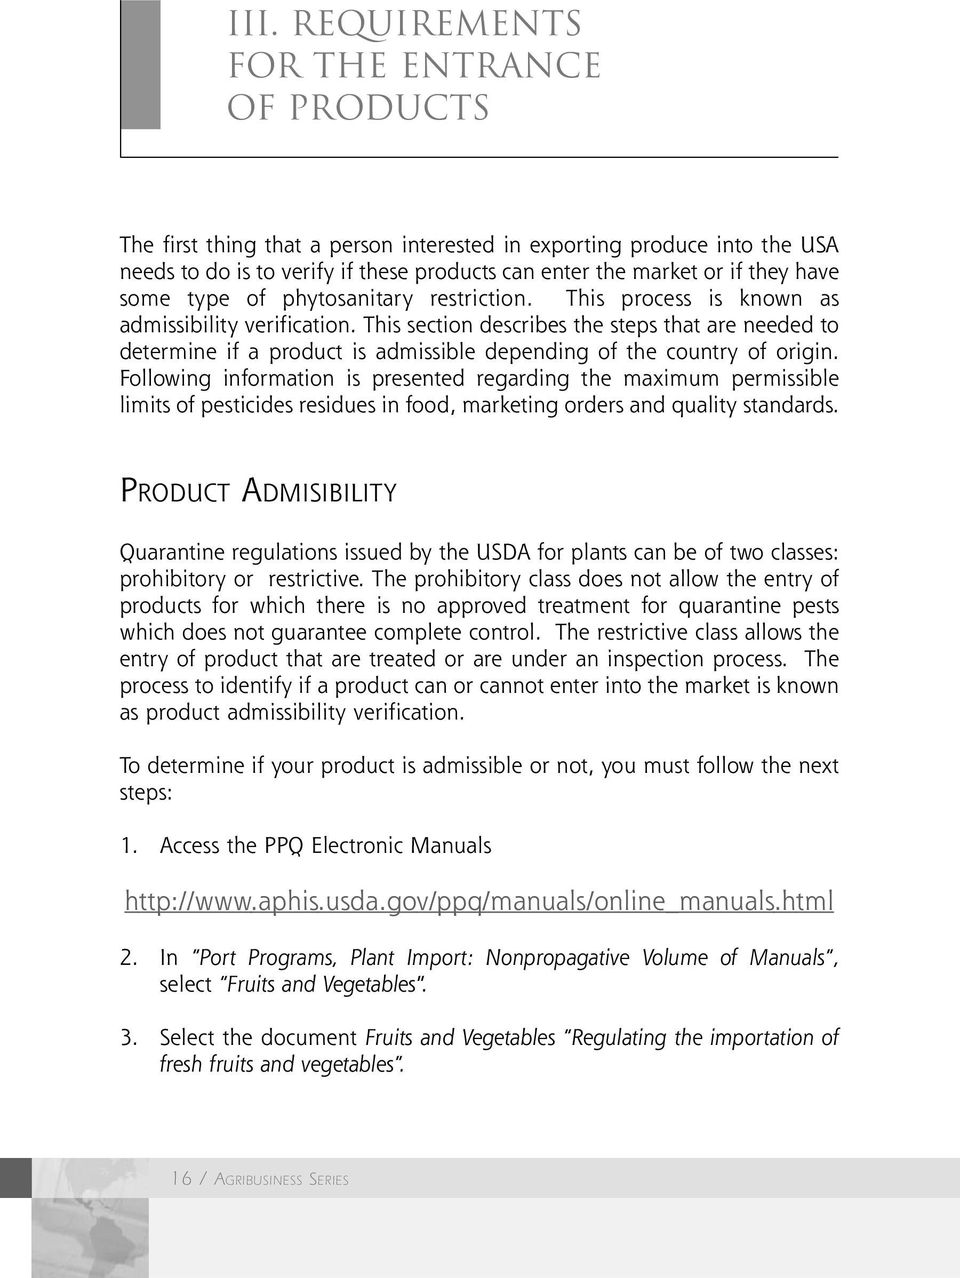 This section describes the steps that are needed to determine if a product is admissible depending of the country of origin.